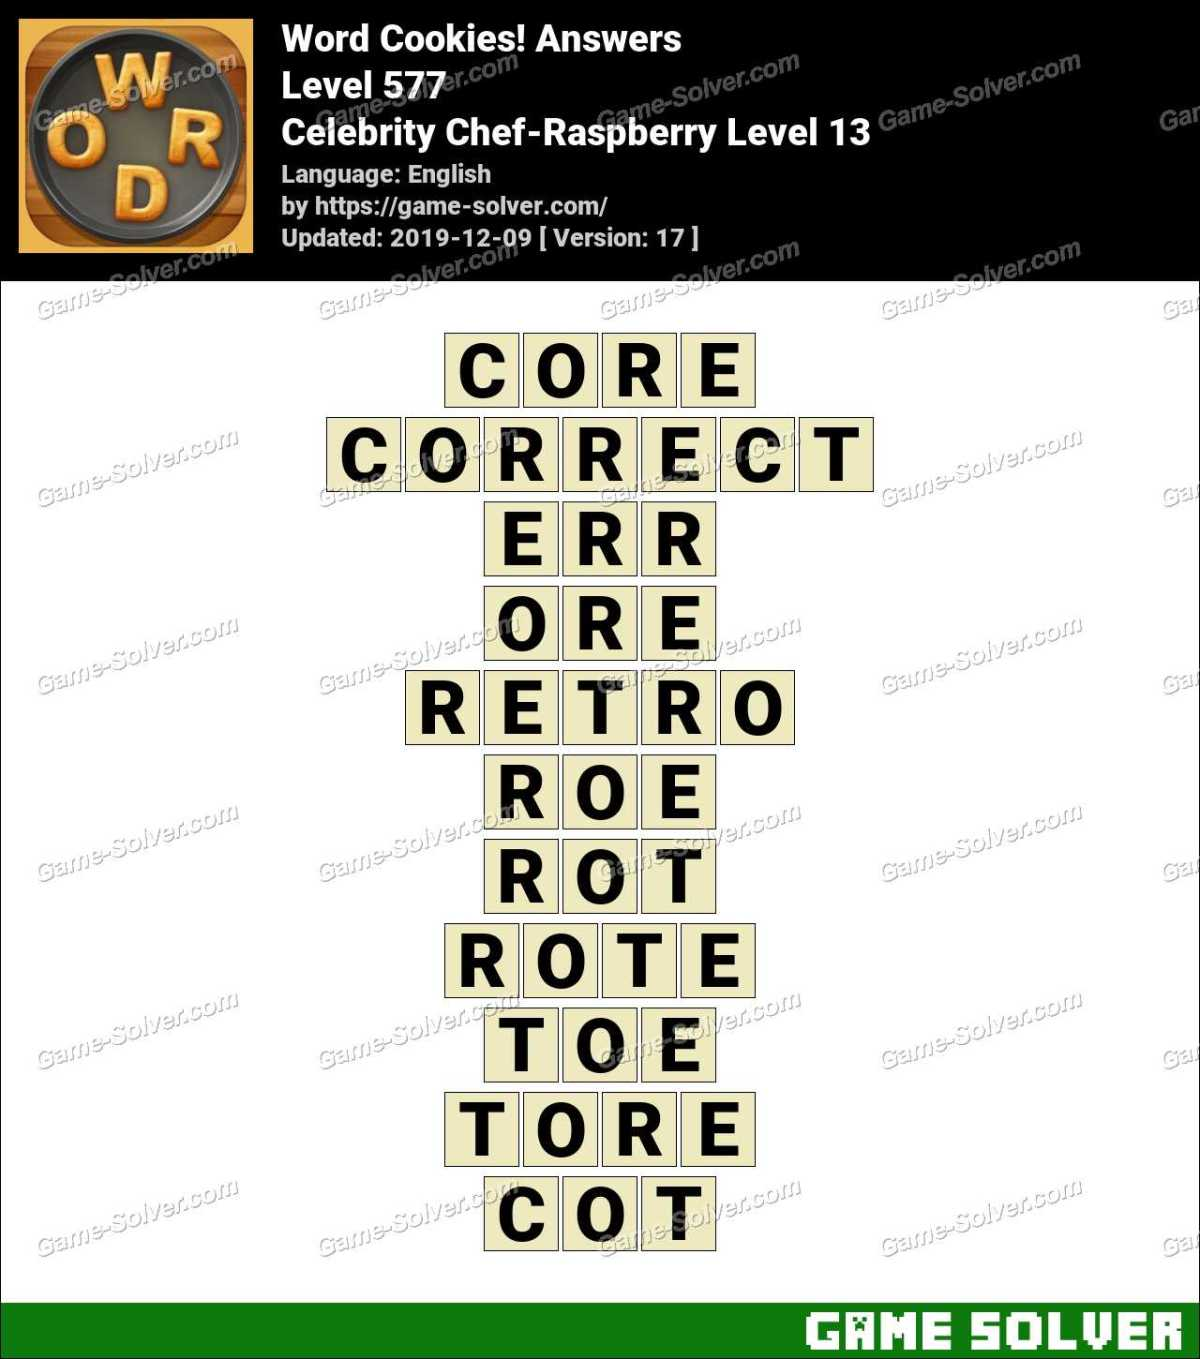 Word Cookies Celebrity Chef-Raspberry Level 13 Answers